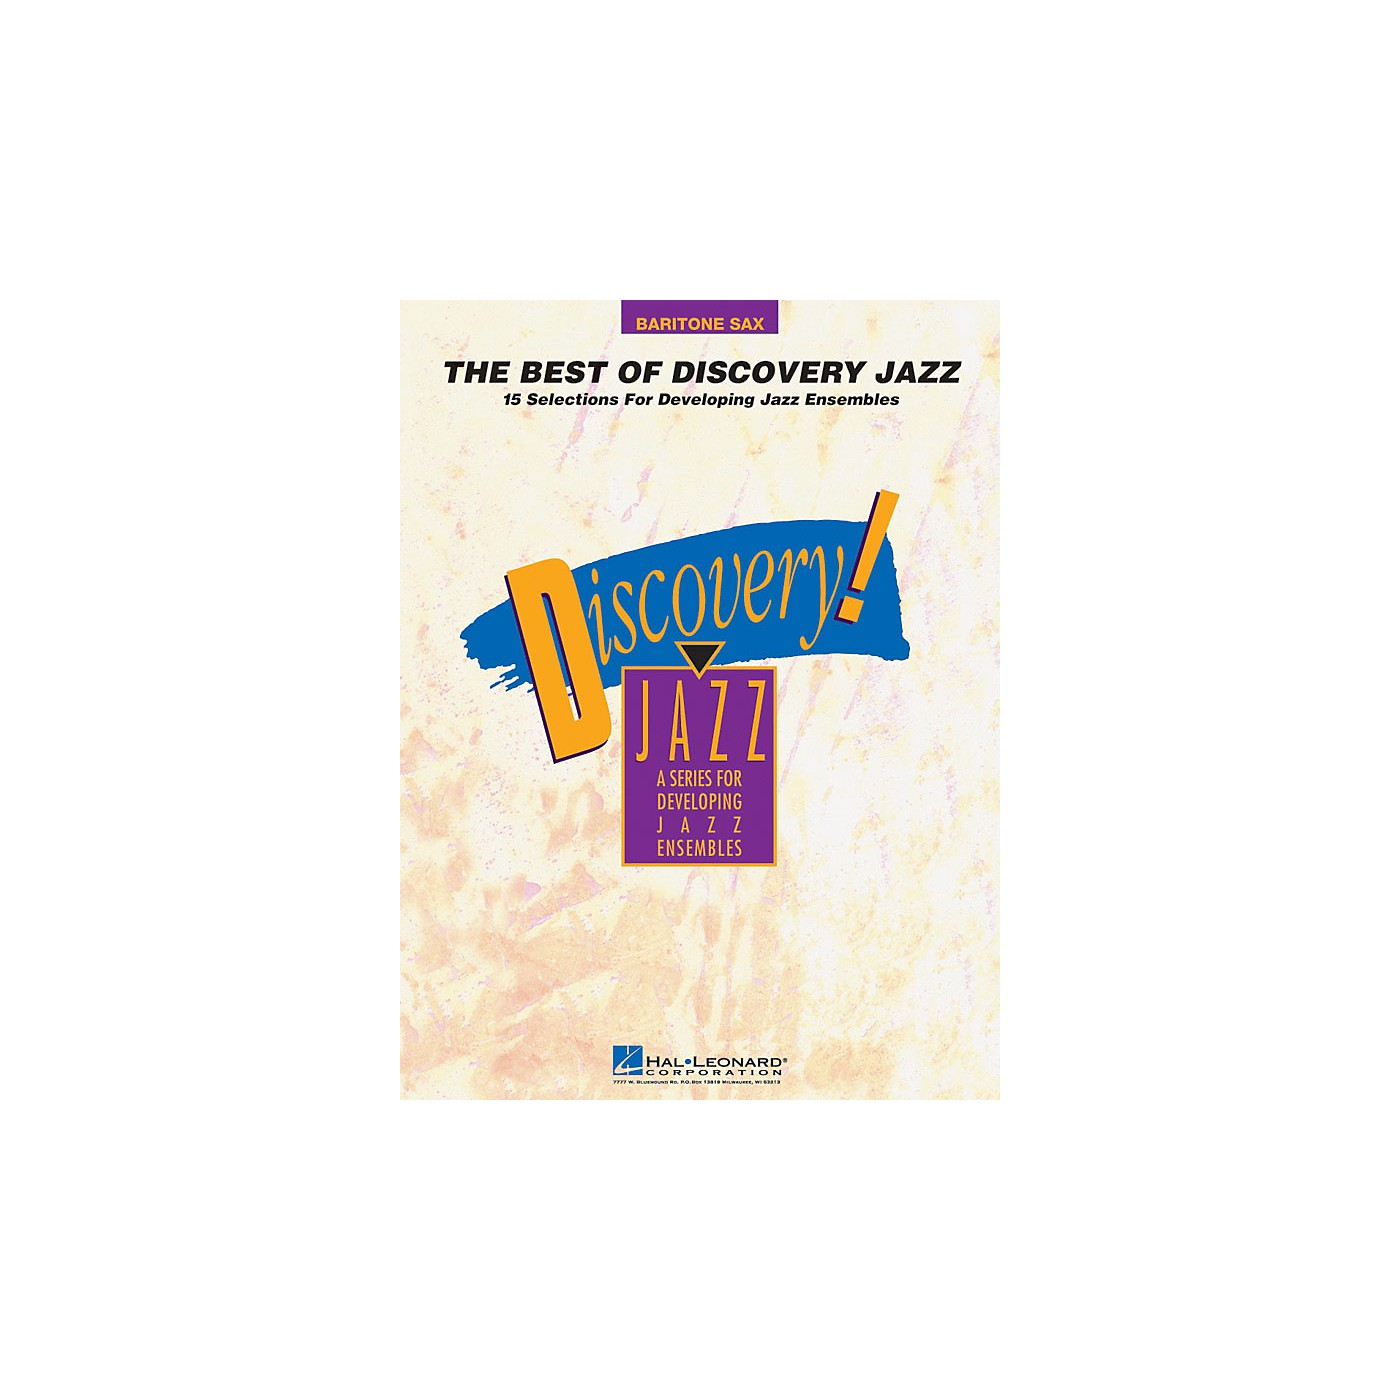 Hal Leonard The Best of Discovery Jazz (Baritone Sax) Jazz Band Level 1-2 Composed by Various thumbnail